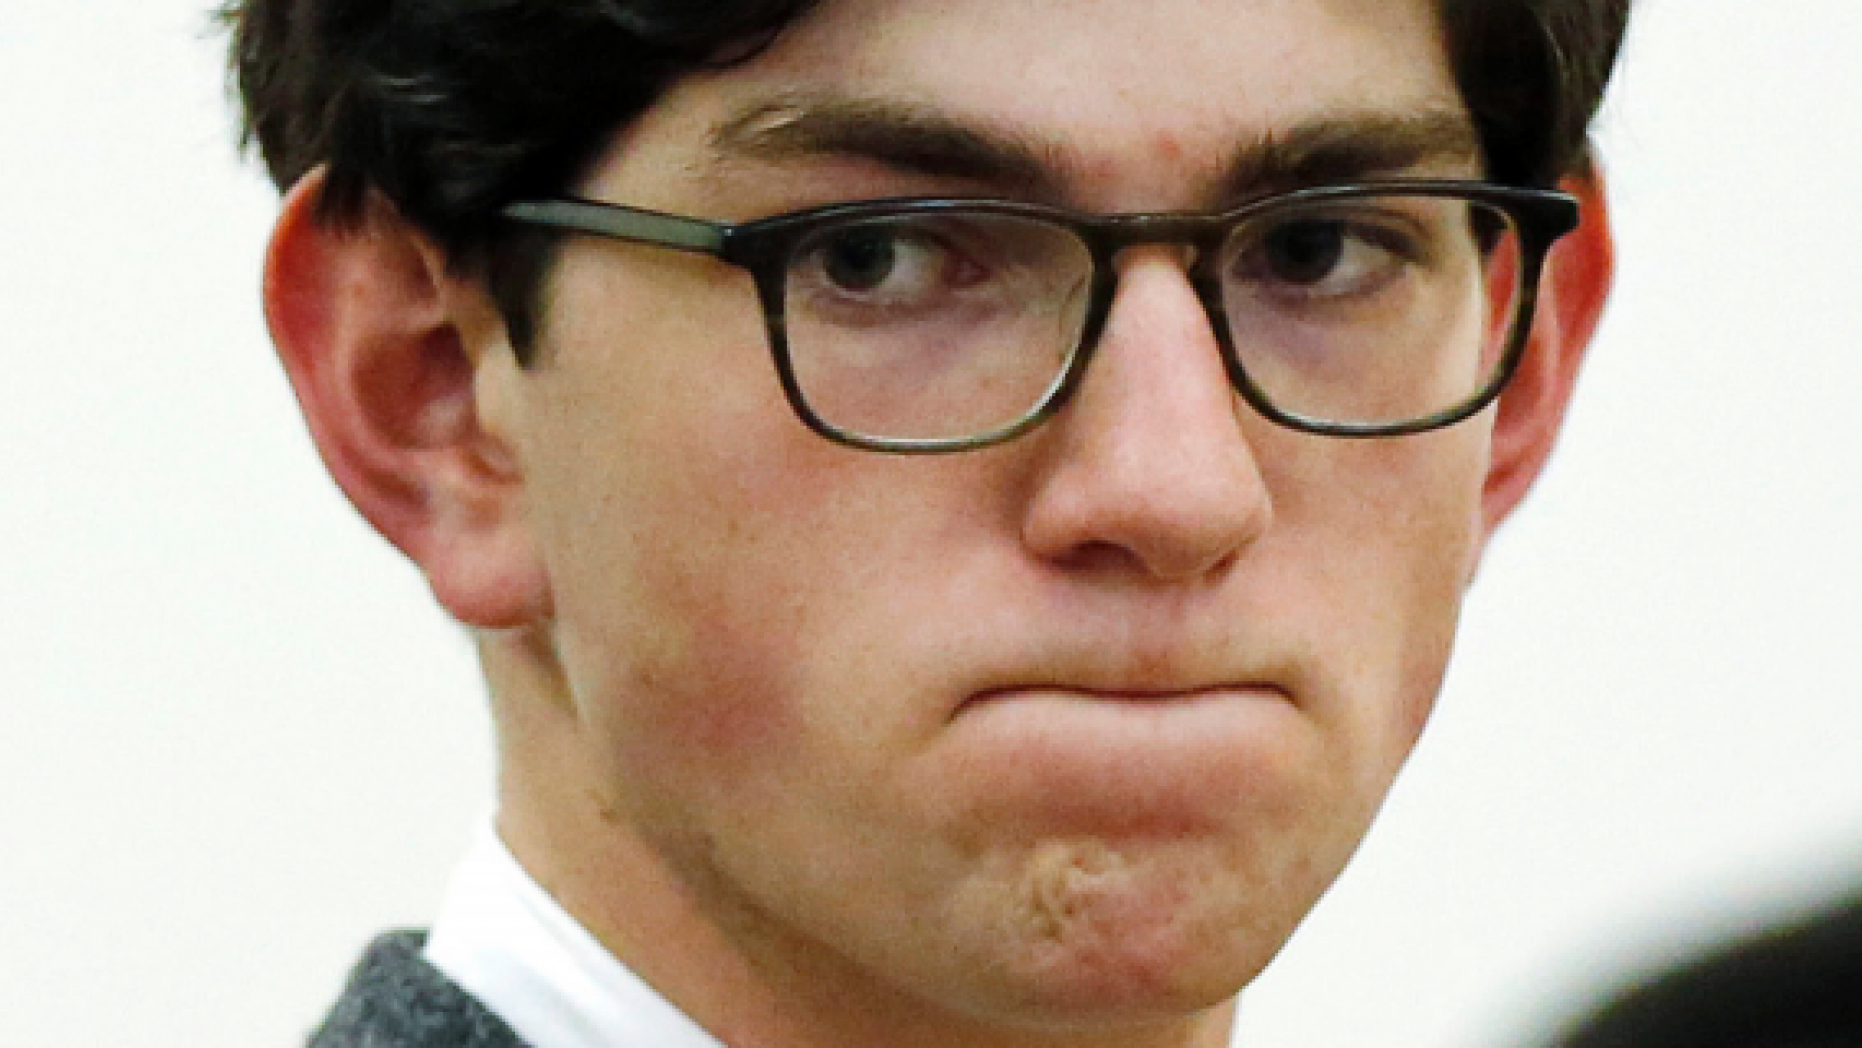 FILE - In this Oct. 29, 2015, file photo, Owen Labrie listens to prosecutors before being sentenced in Merrimack County Superior Court in Concord, N.H. He was convicted of sexually assaulting a younger prep school classmate in 2014 and was sentenced to jail. Labrie reported to the Merrimack County jail on Wednesday, Dec. 26, 2018, to begin serving the remaining 10 months of his jail sentence. (AP Photo/Jim Cole, Pool, File)